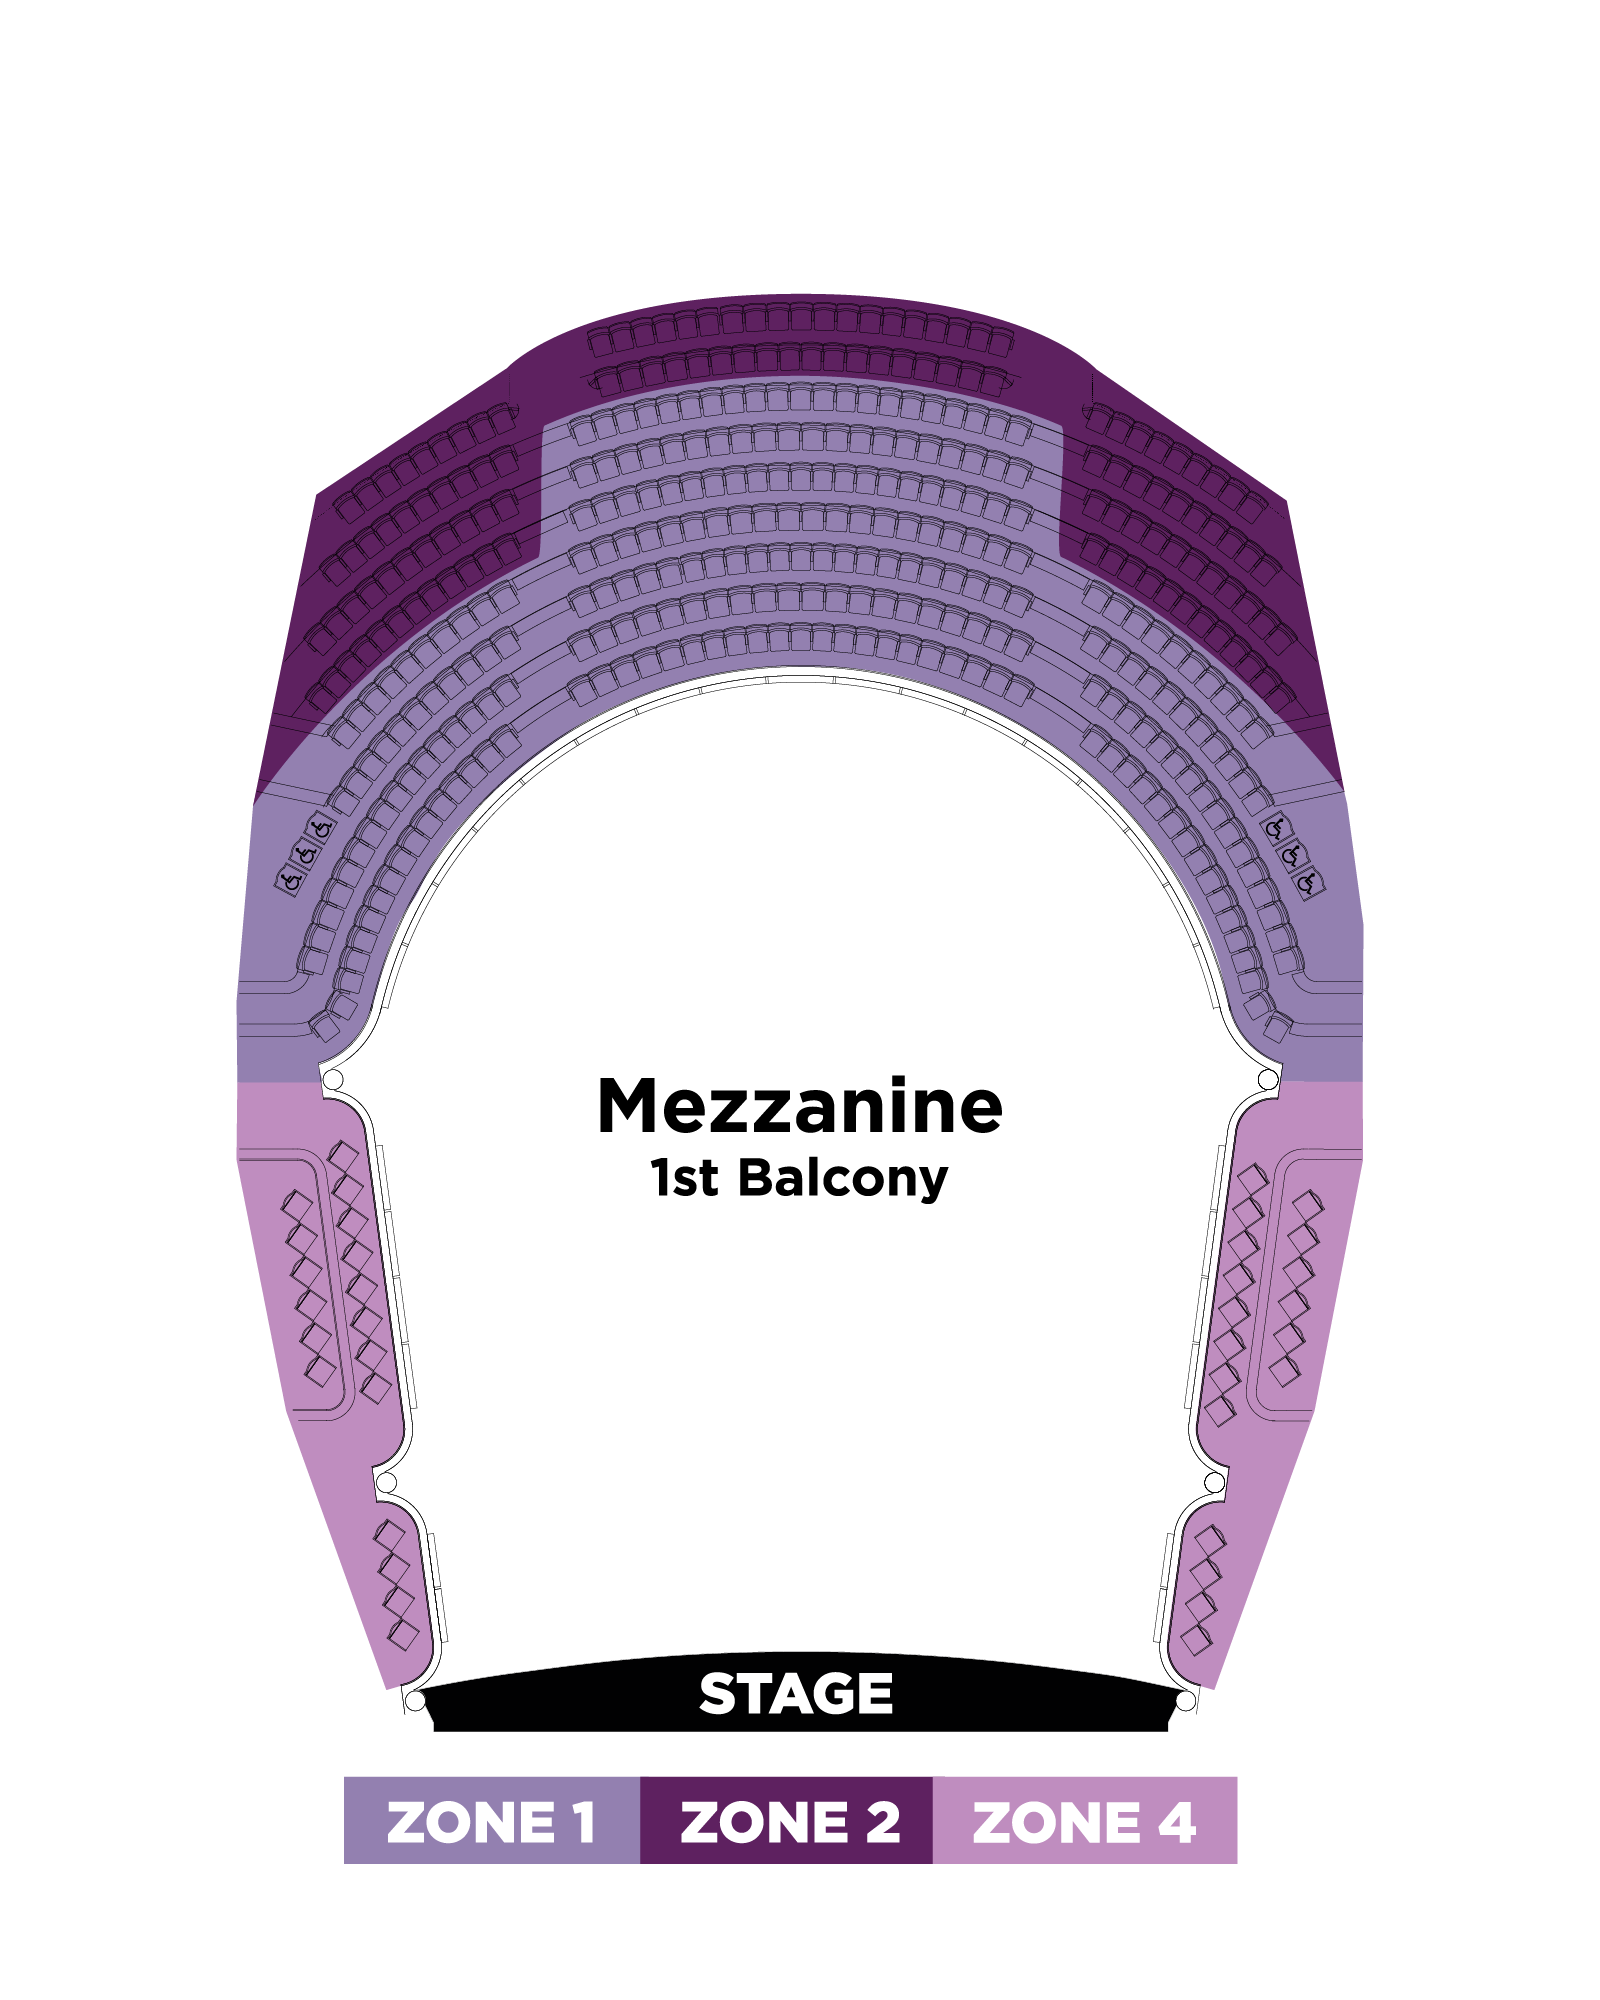 Mezzanine Seating Map